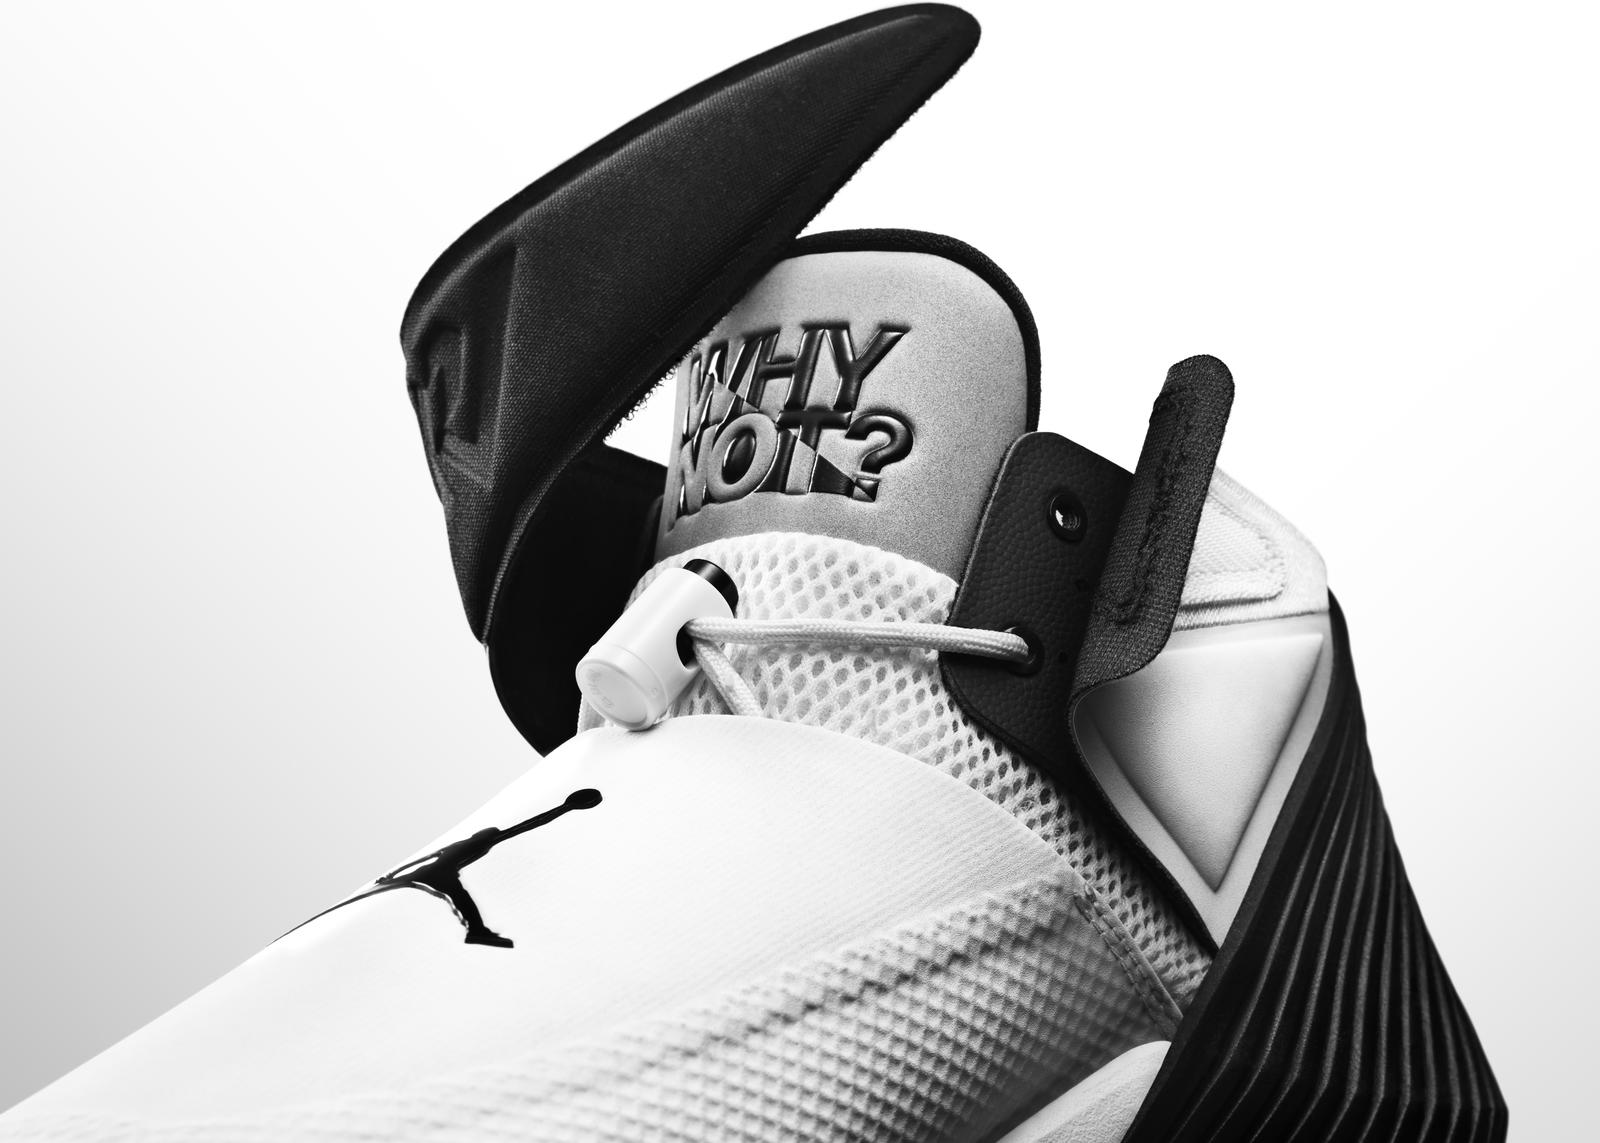 First Look: Russell Westbrook's Signature Performance Shoe, the Jordan Why Not Zer0.1 24